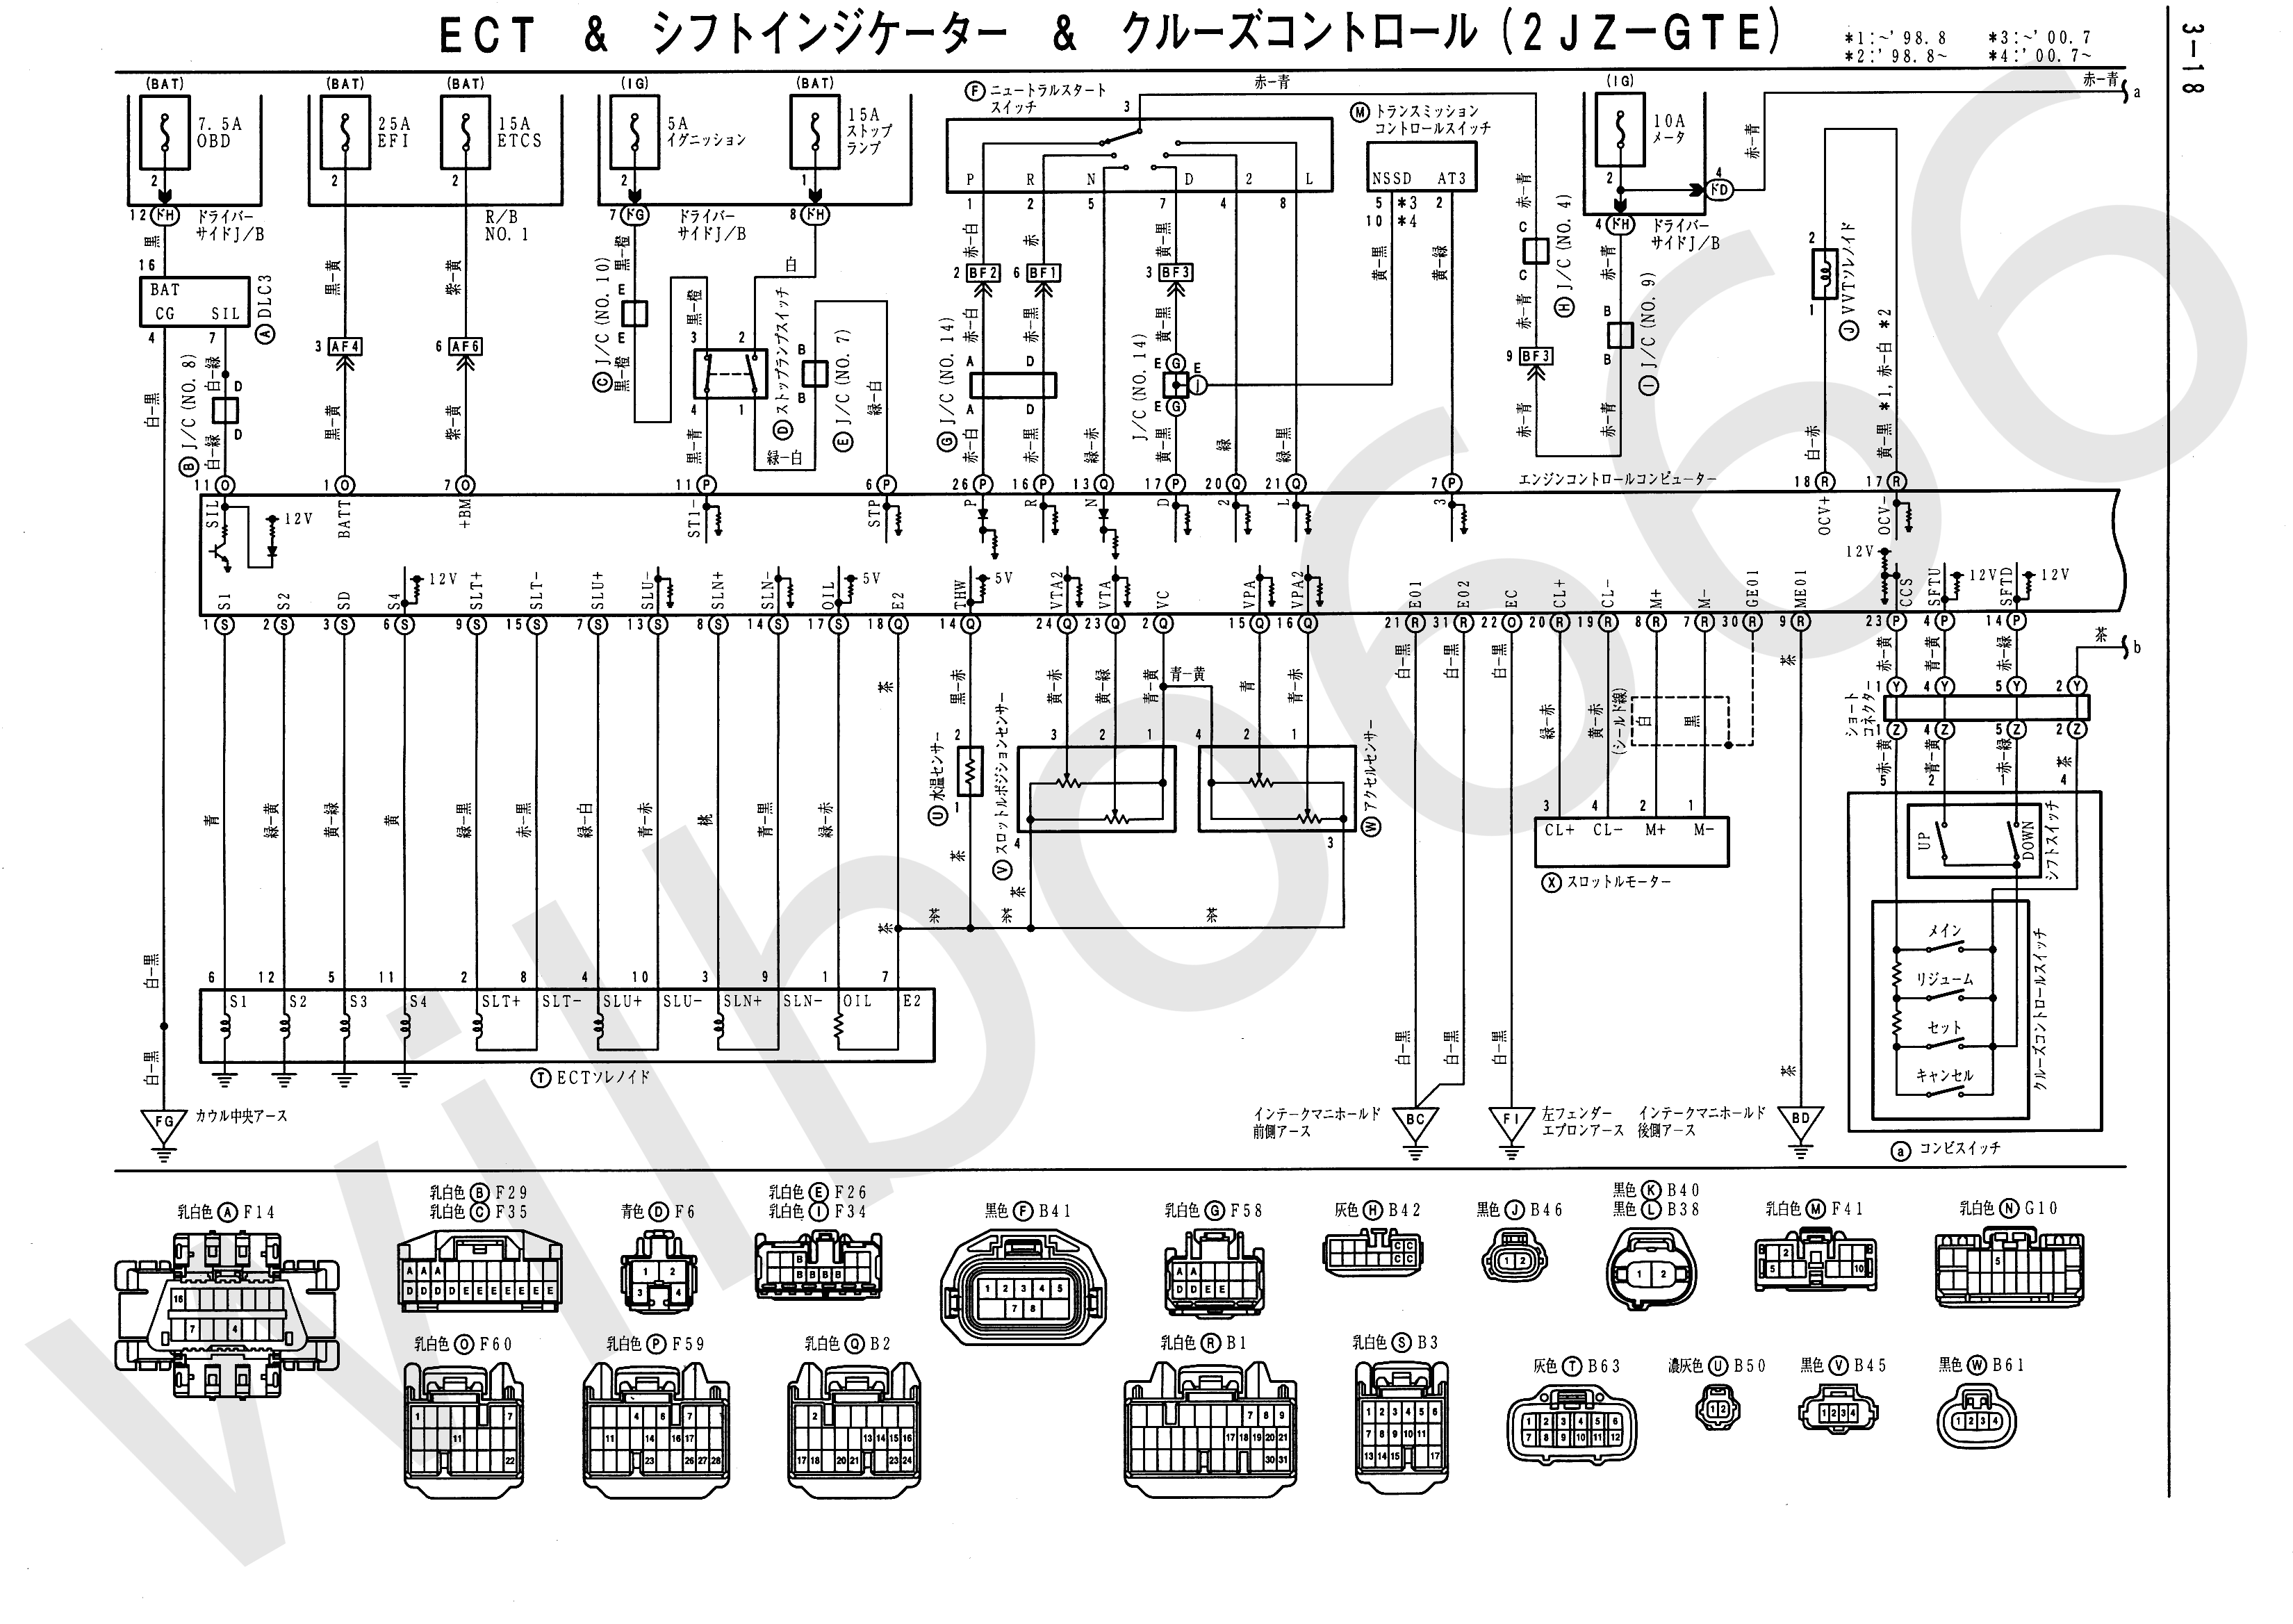 JZS161 Electrical Wiring Diagram 6748505 3 18 2jz wiring diagram basic home electrical wiring diagrams \u2022 wiring 1jz vvti wiring harness at et-consult.org